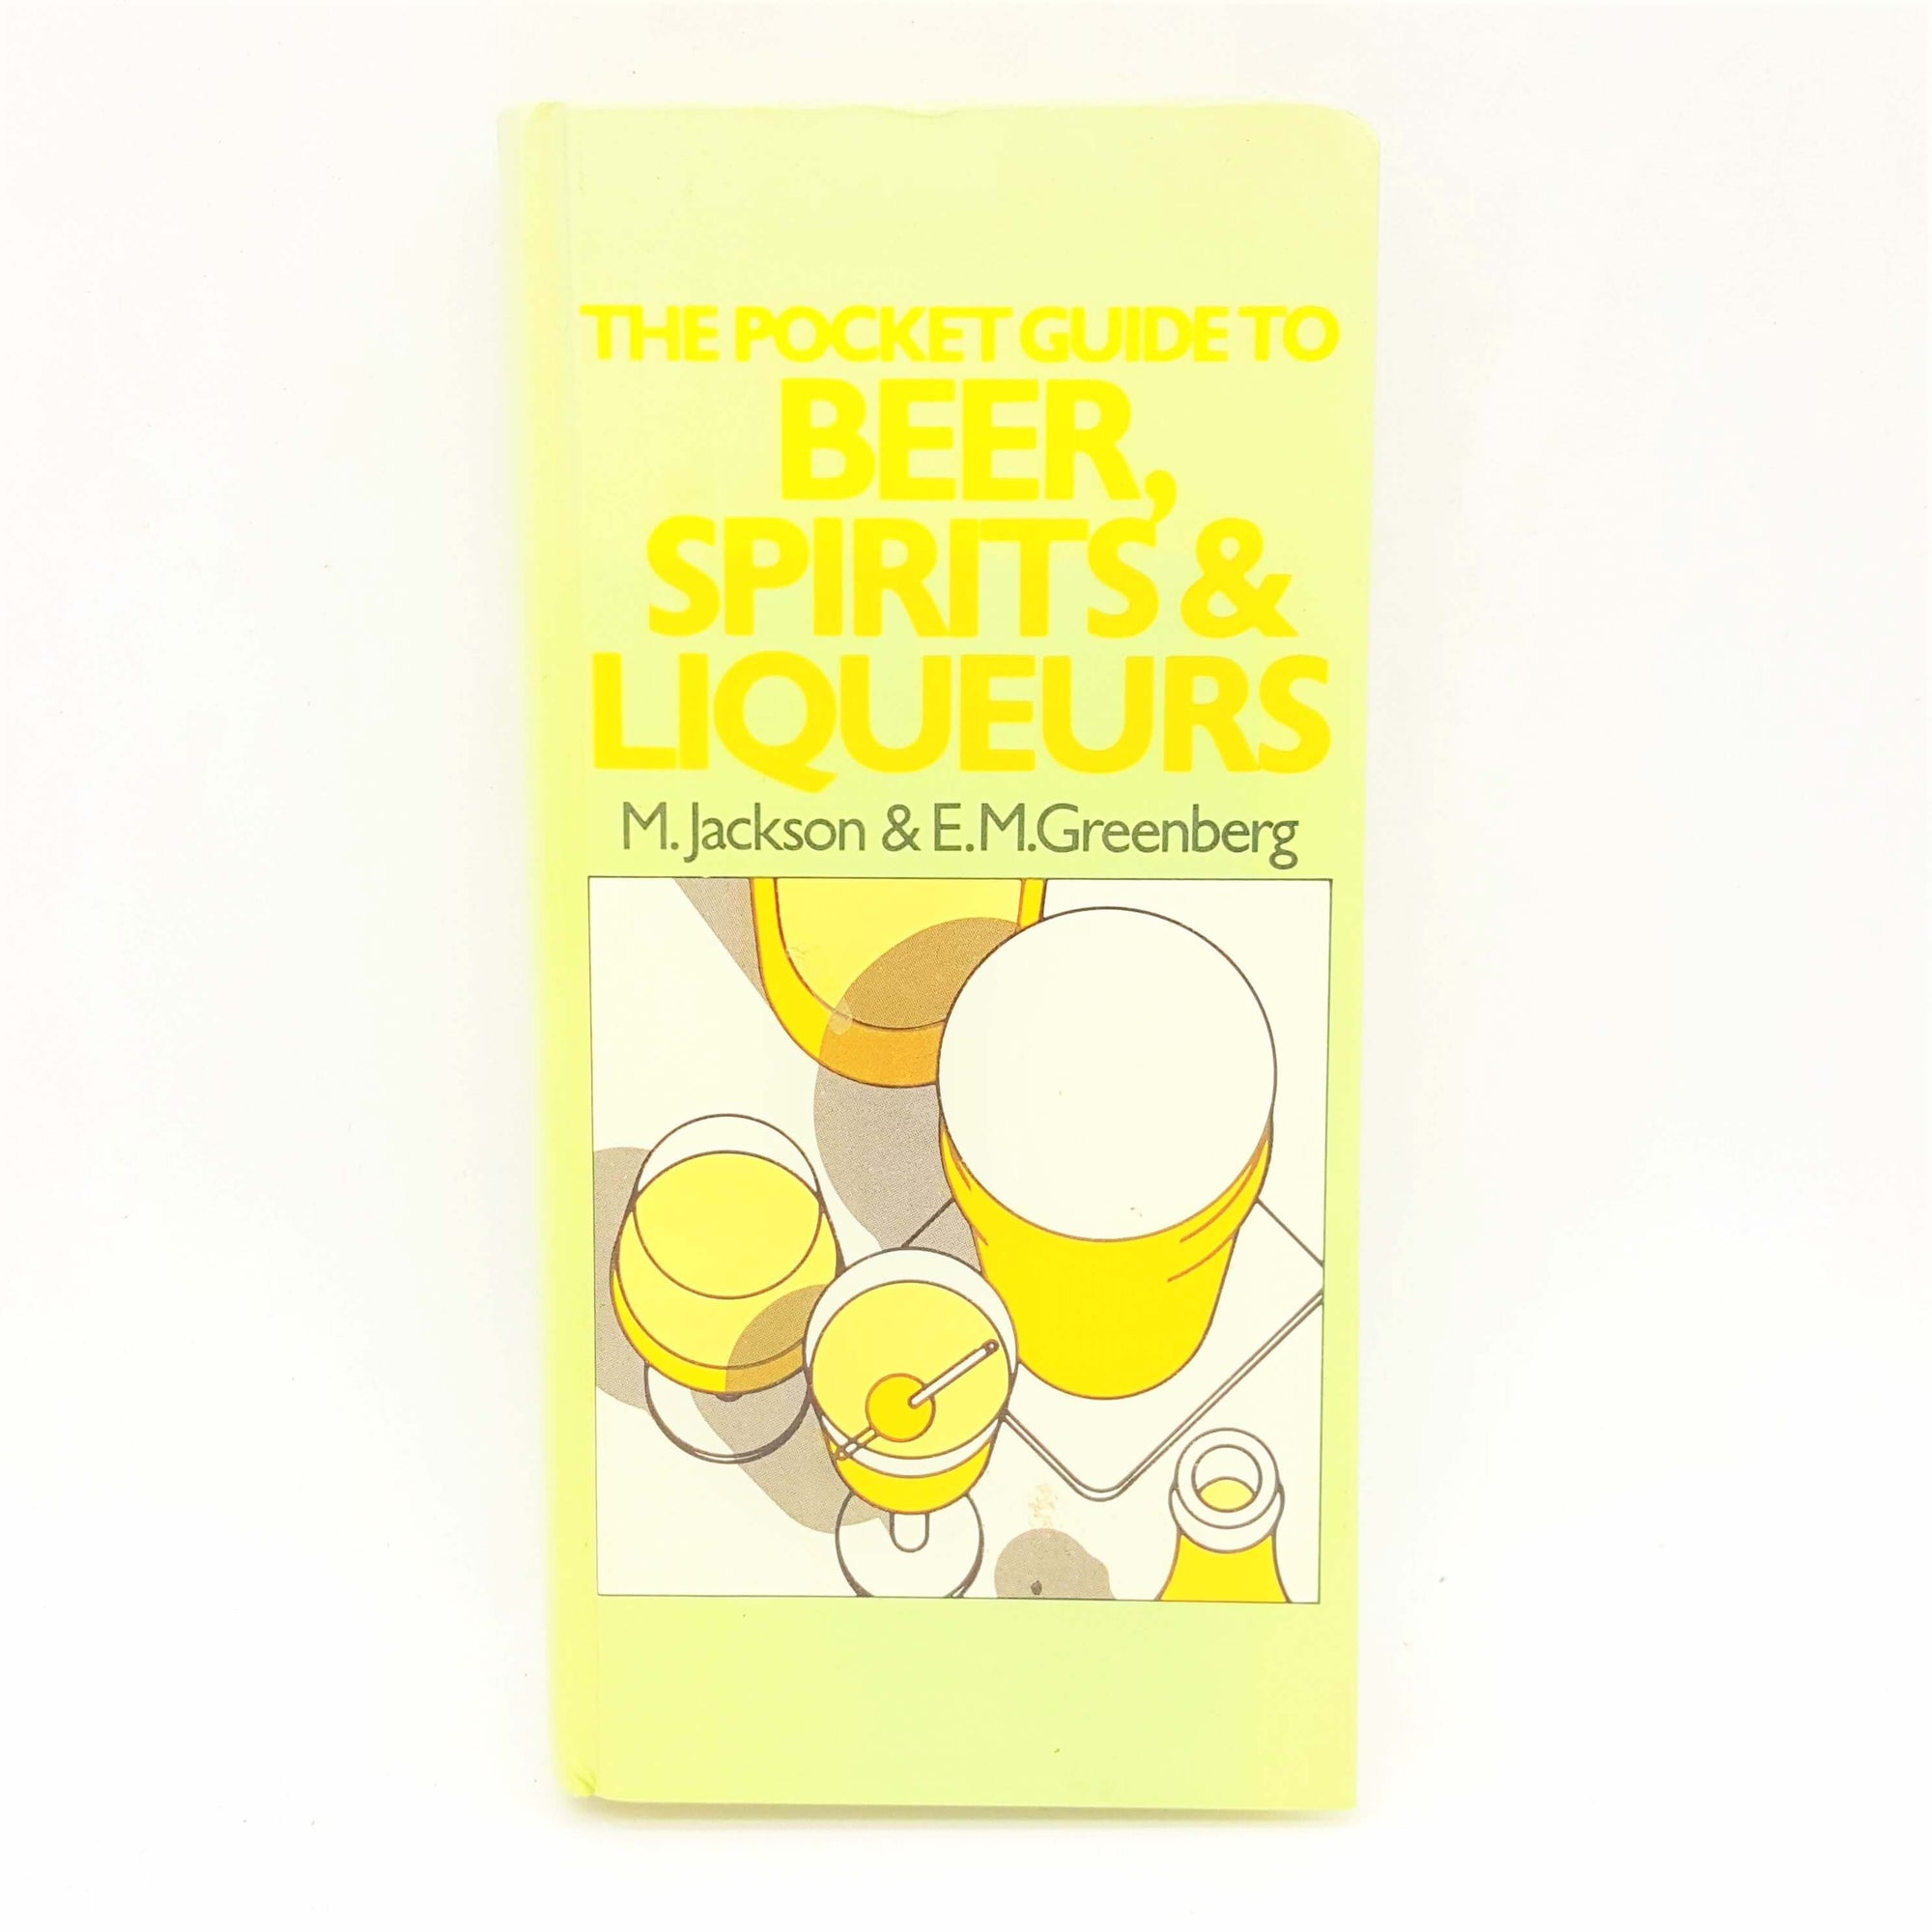 The Pocket Guide to Beer, Spirits & Liqueurs 1972 Country House Library